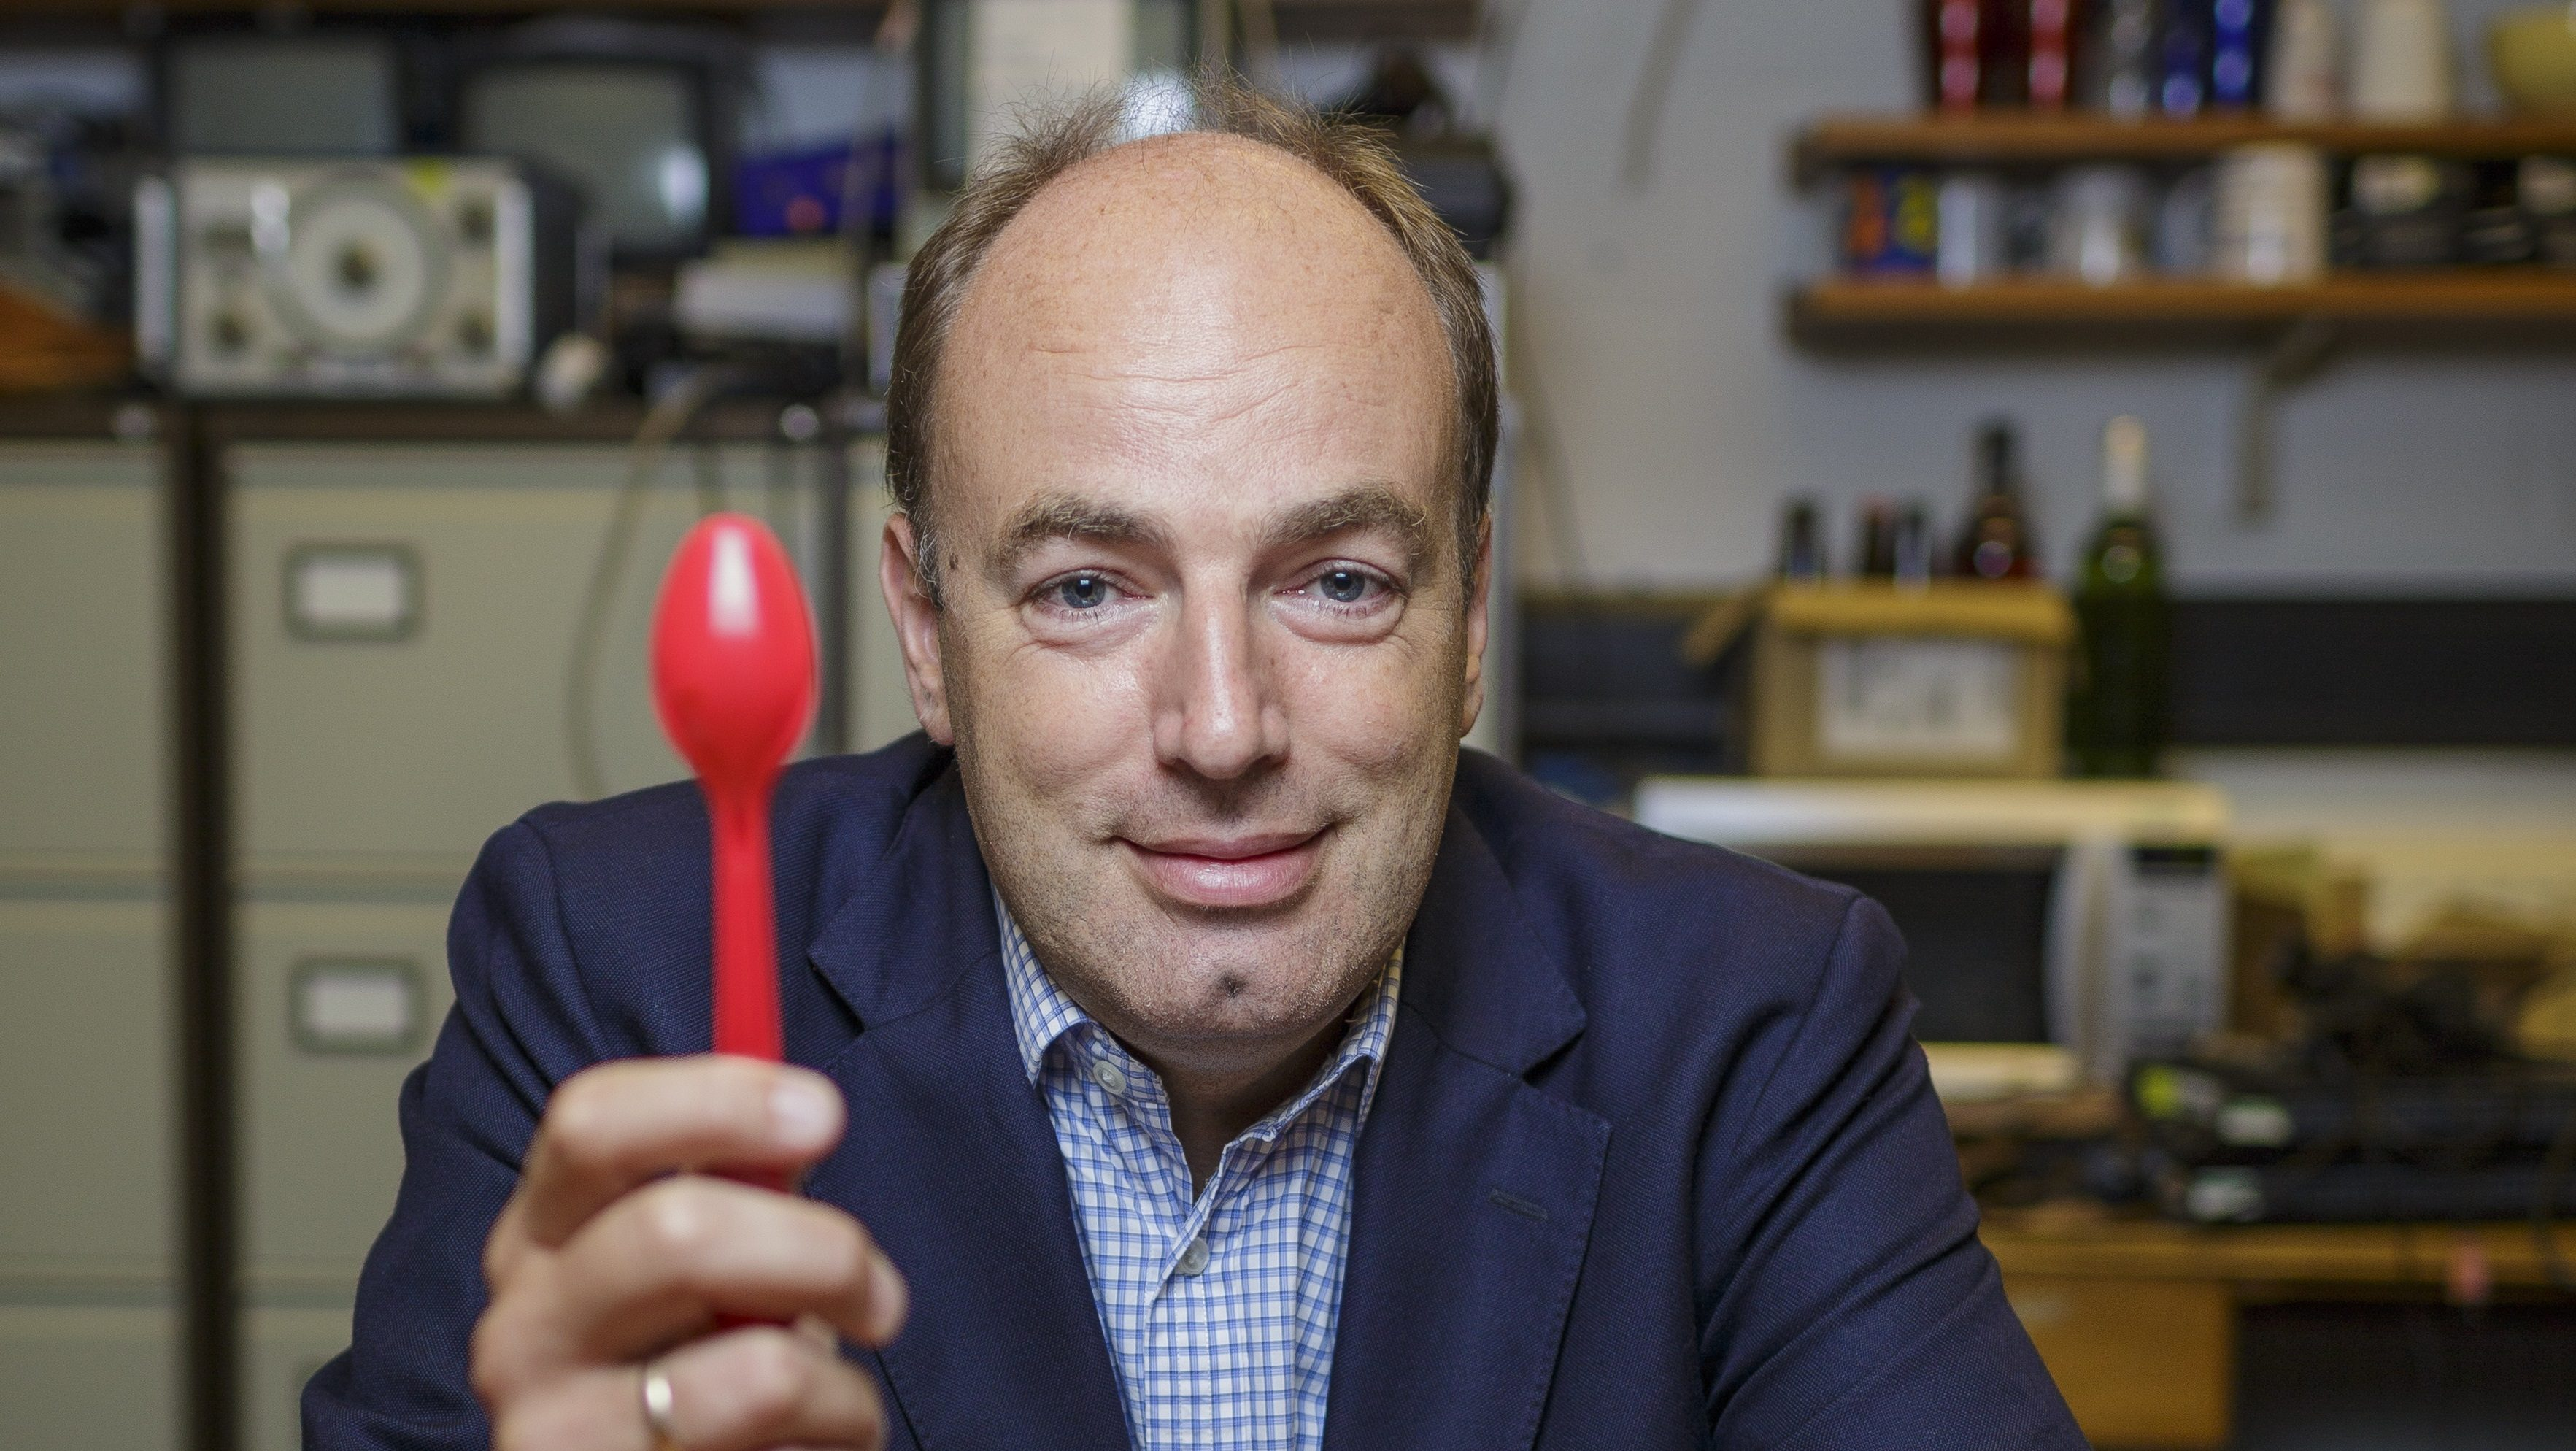 Prof Charles Spence in a blue blazer and checkered shirt smiling and holding up a red spoon.